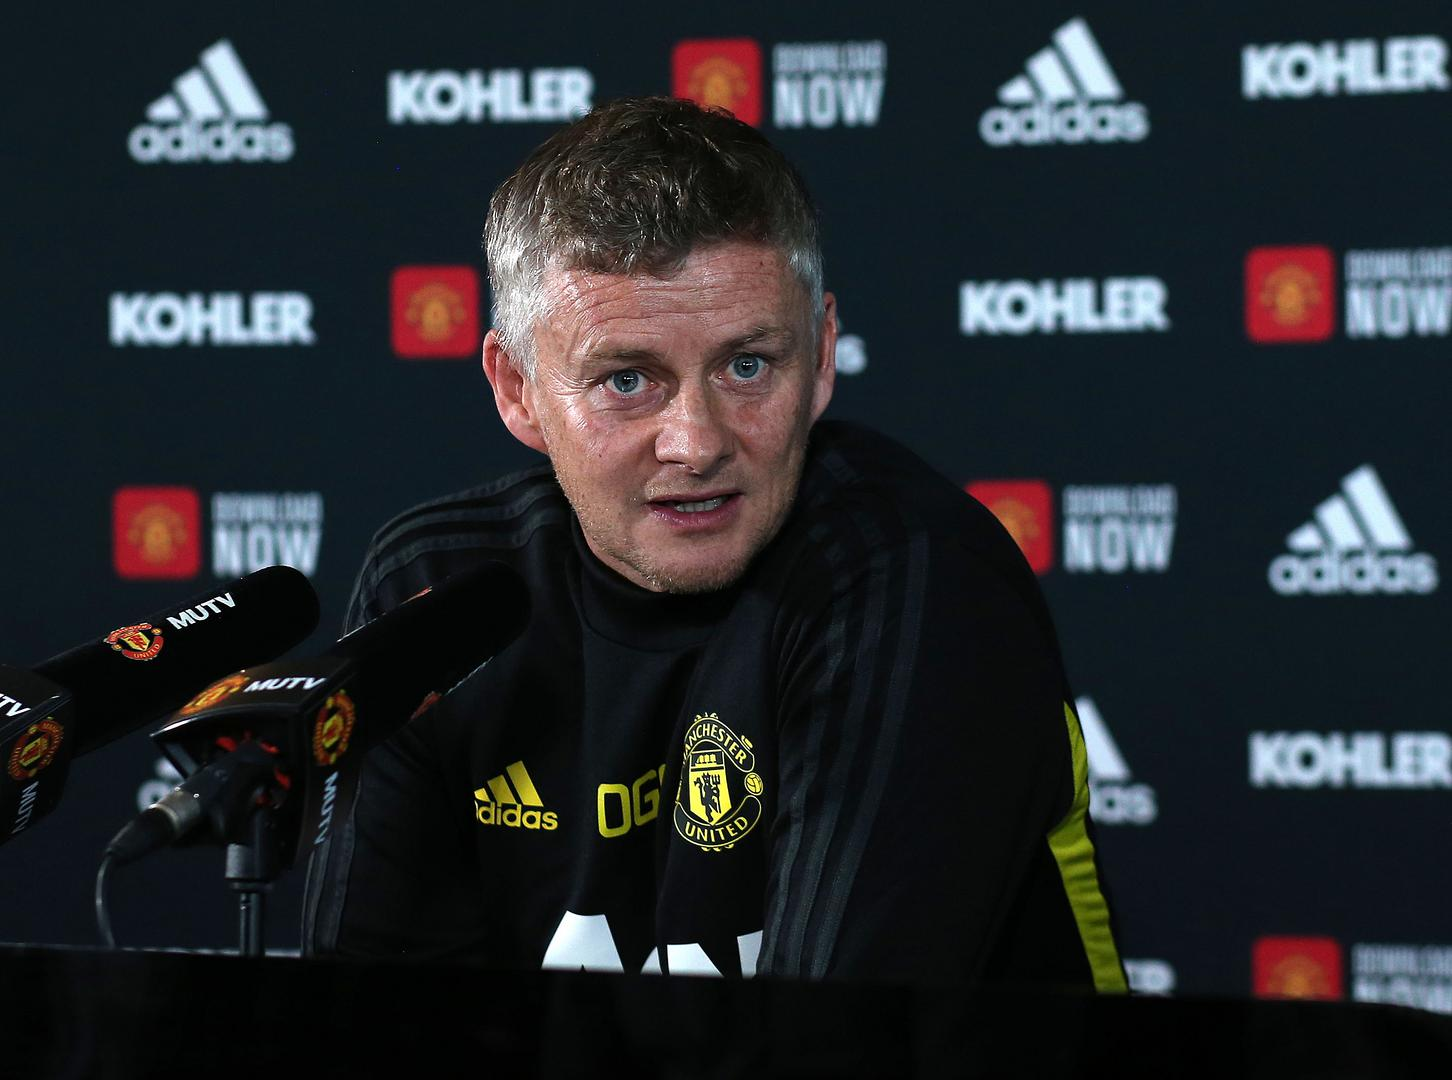 Ole Gunnar Solskjaer in his pre-match press conference